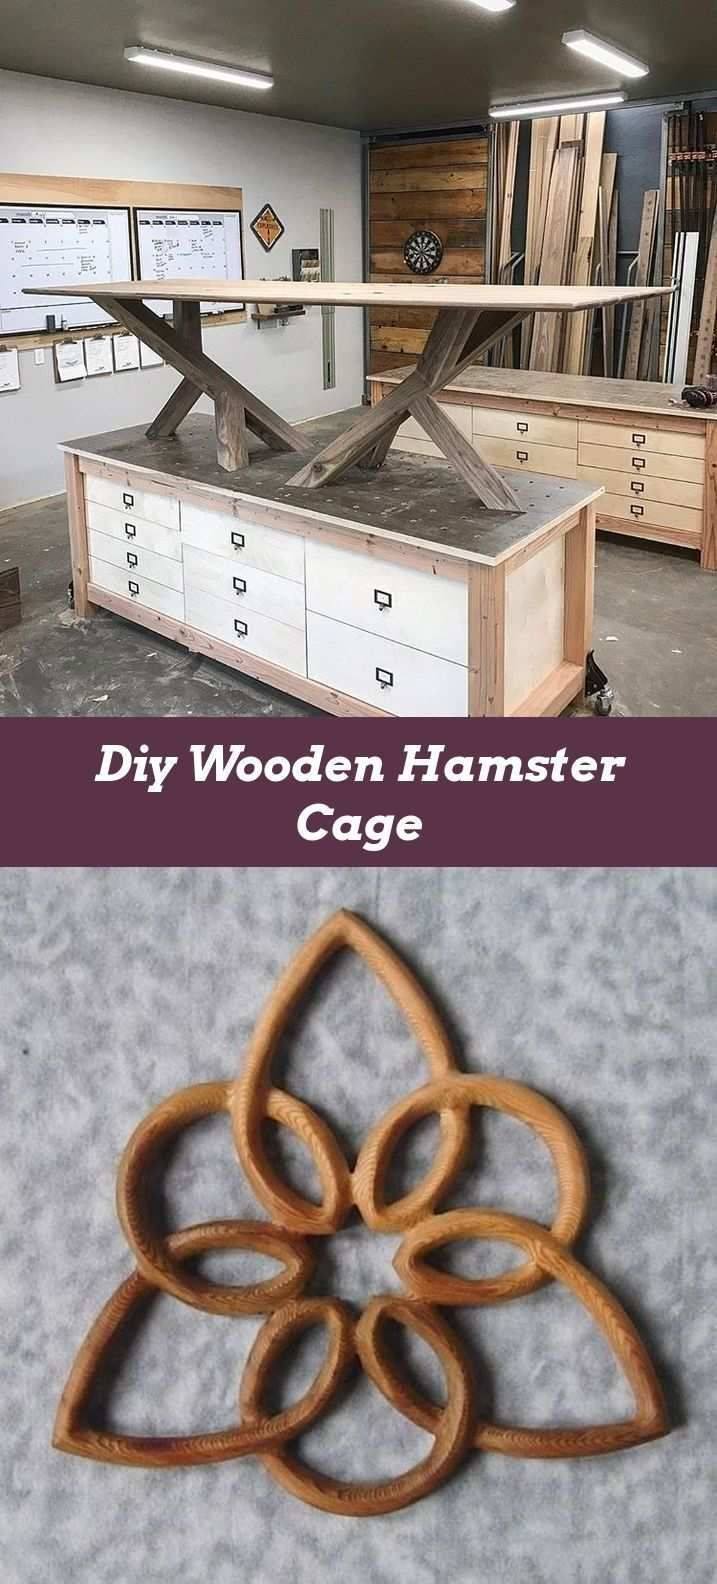 Woodworking Projects Free Plans Diy 2x4 Wood Projects